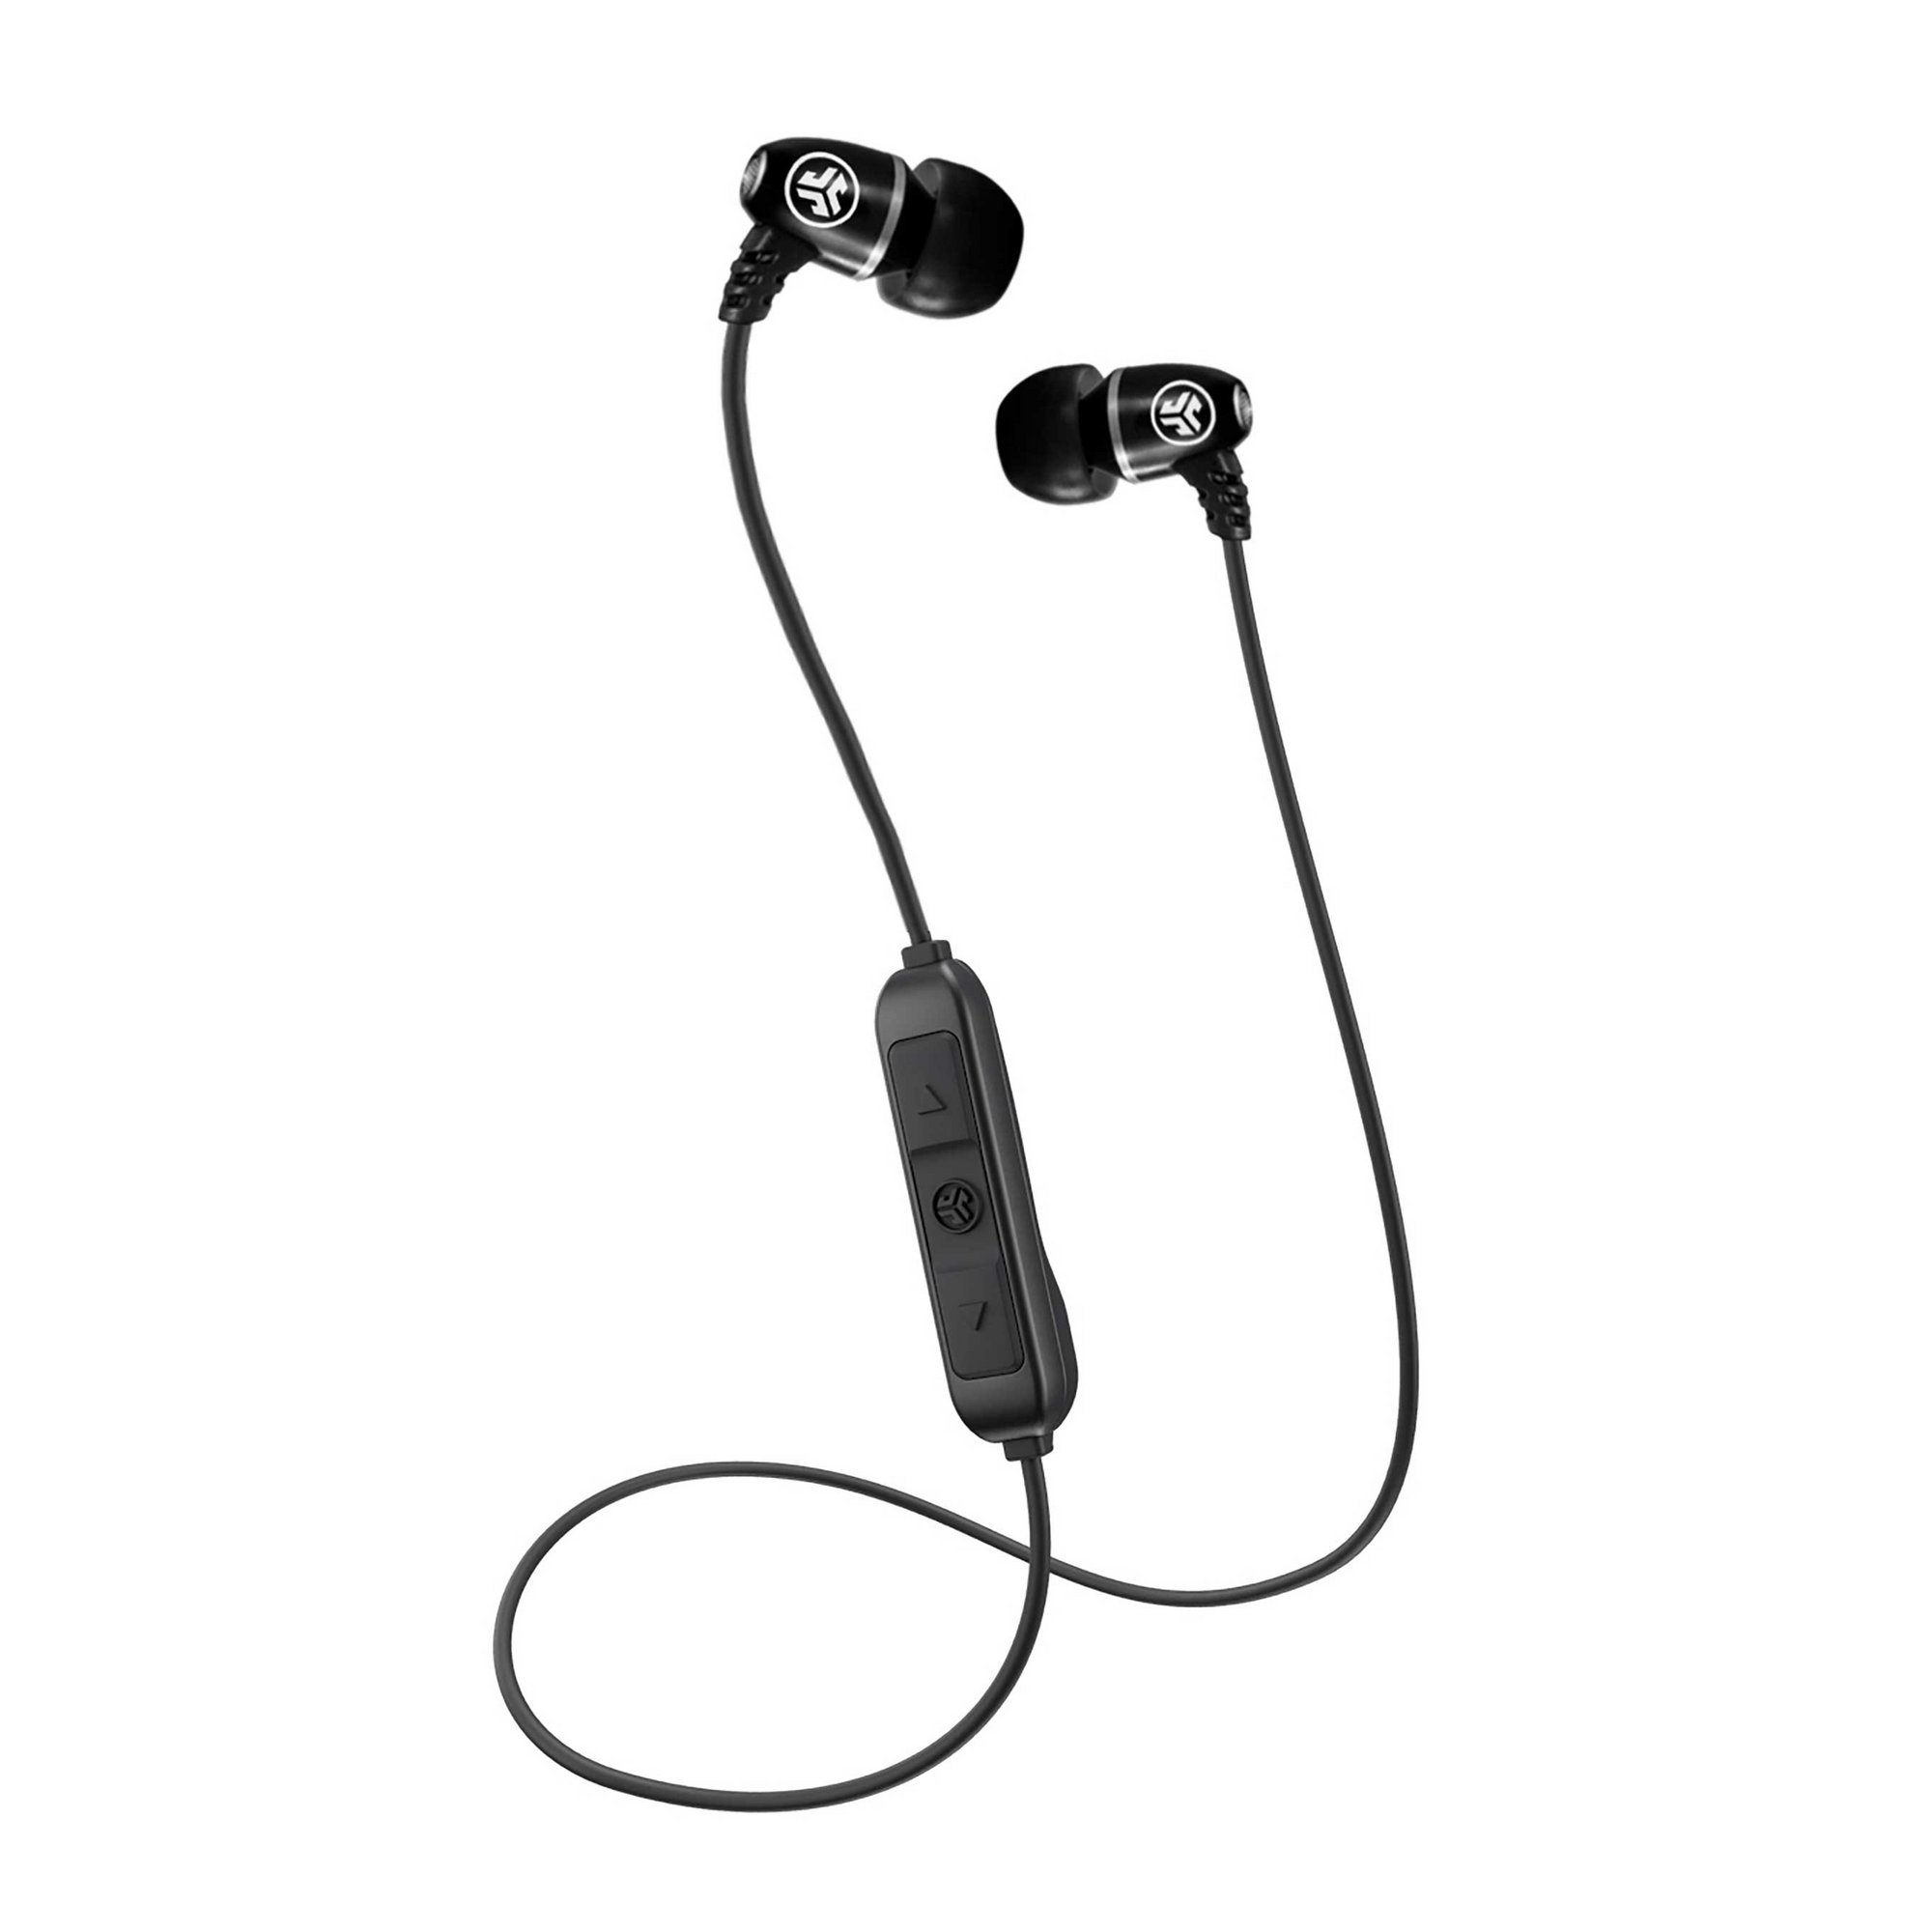 Image of JLab Metal Rugged Wireless Earbuds